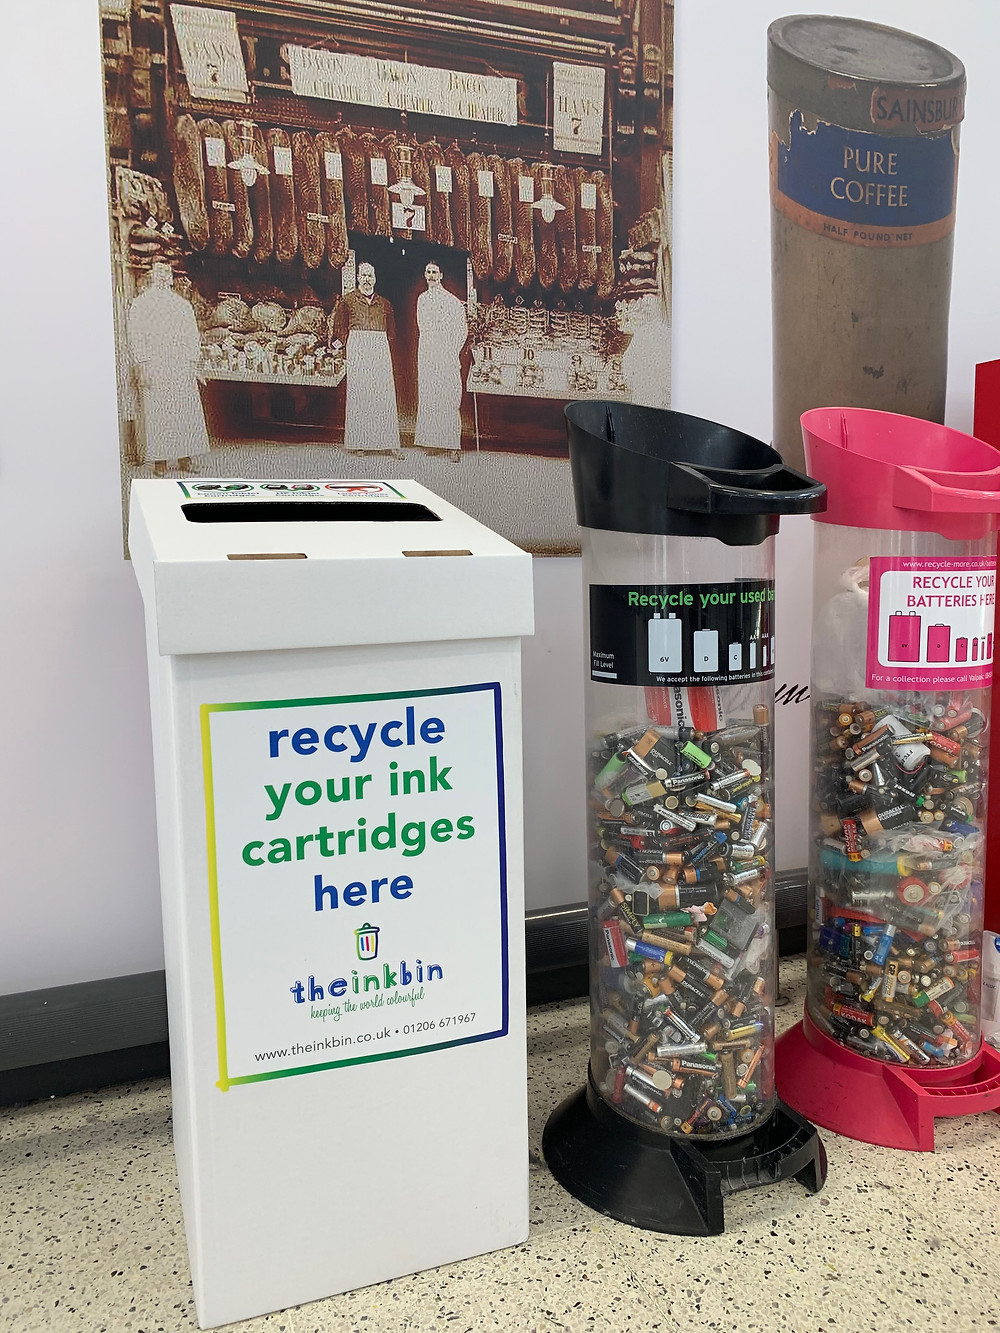 the winning ink bin designs will be added to our community recycling bins in supermarkets and community venues